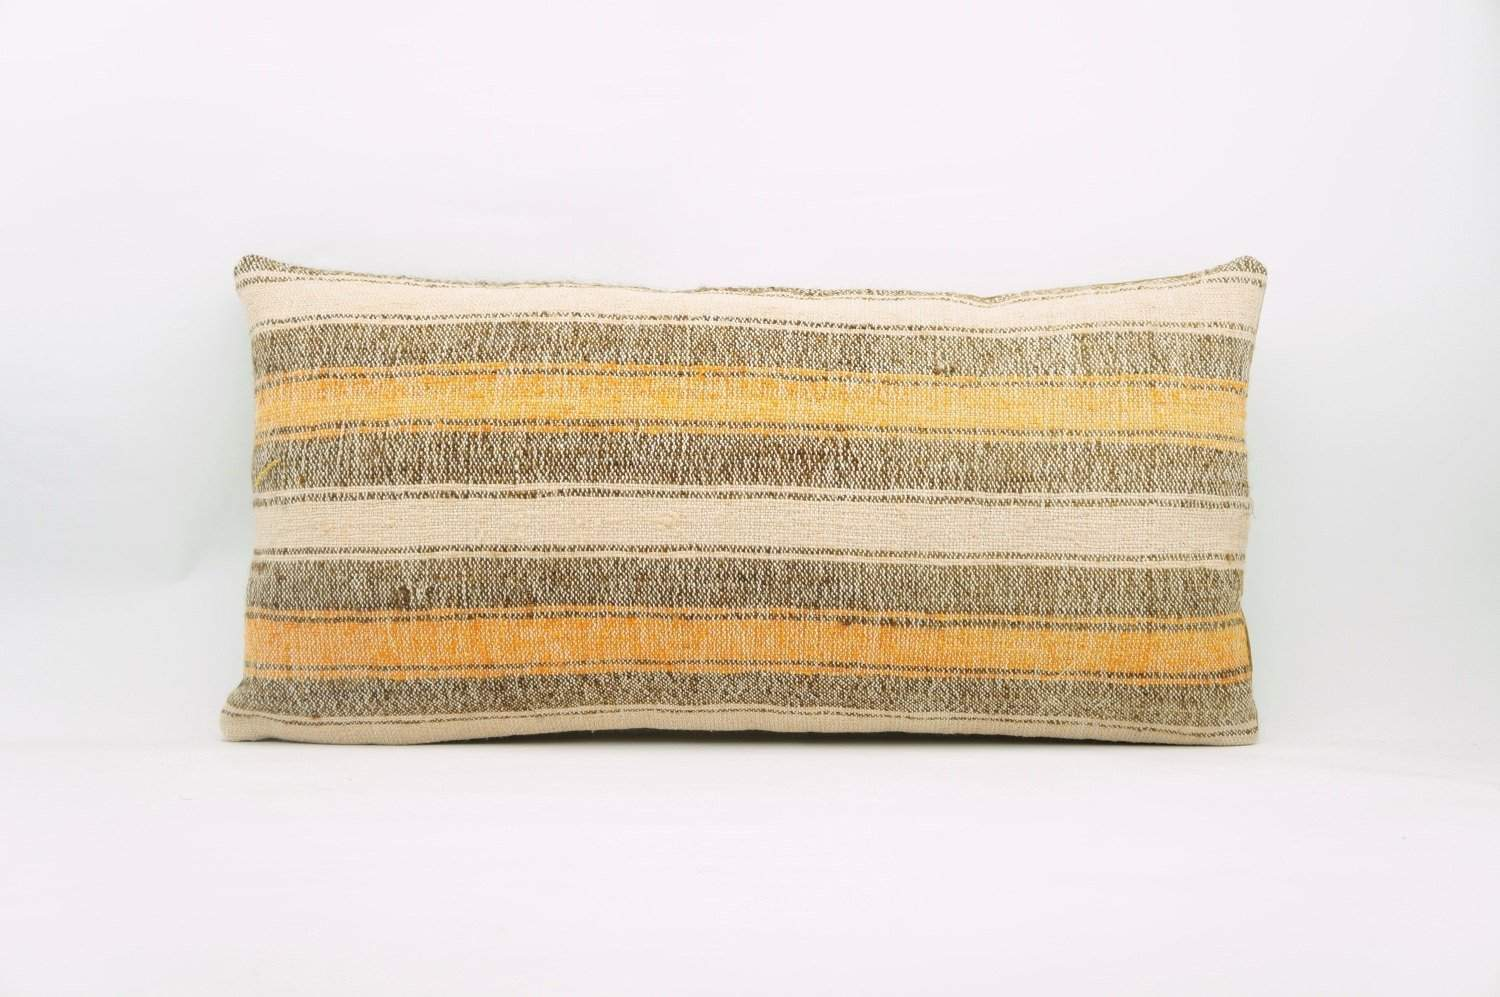 12x24 Vintage Hand Woven Kilim Pillow Lumbar Bohemian pillow case, Modern home decor orange white brown striped 964